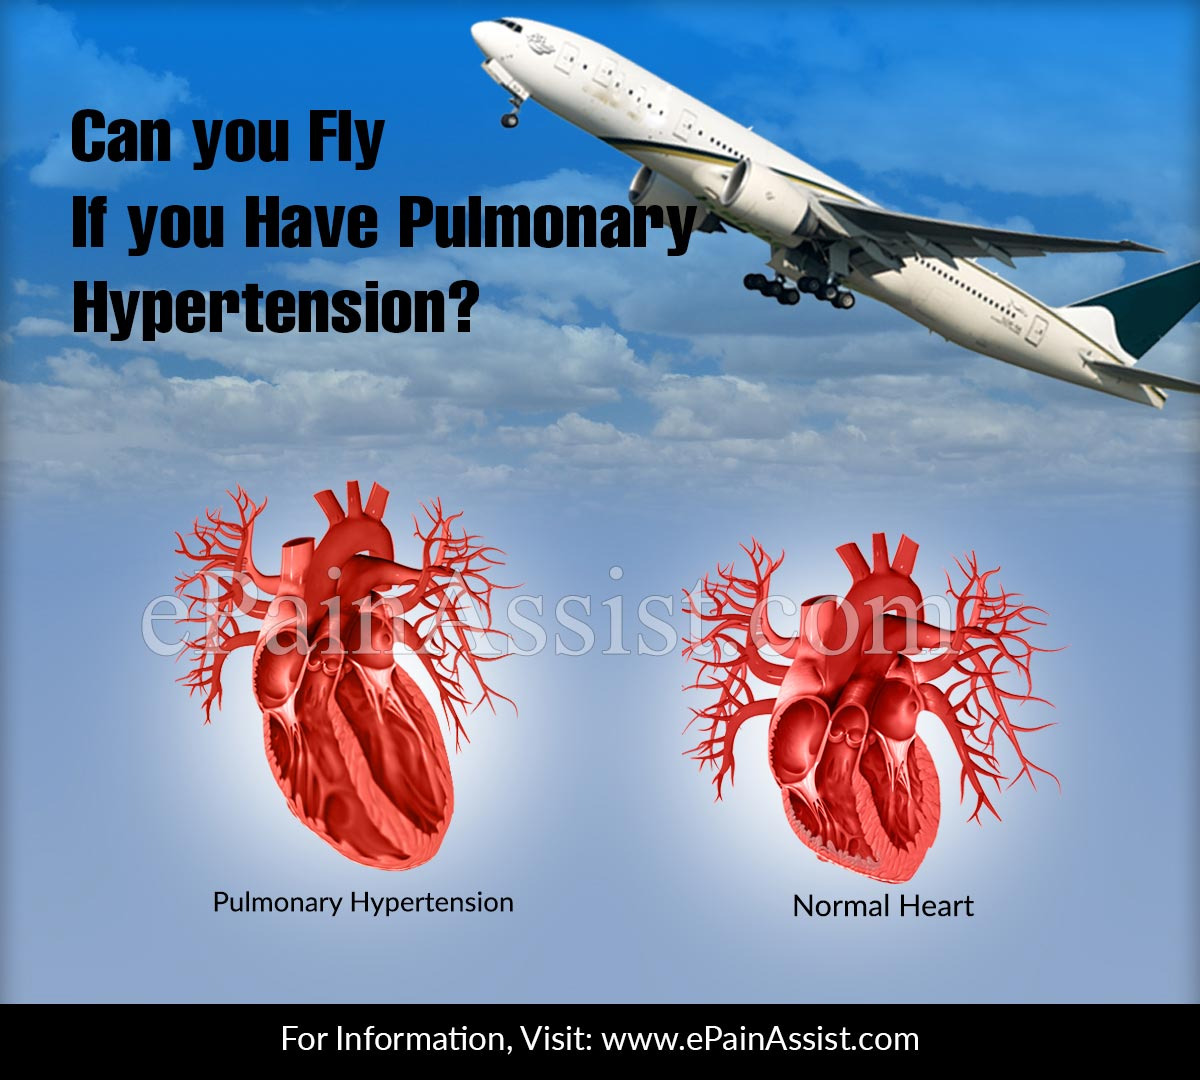 Can You Fly If You Have Pulmonary Hypertension?